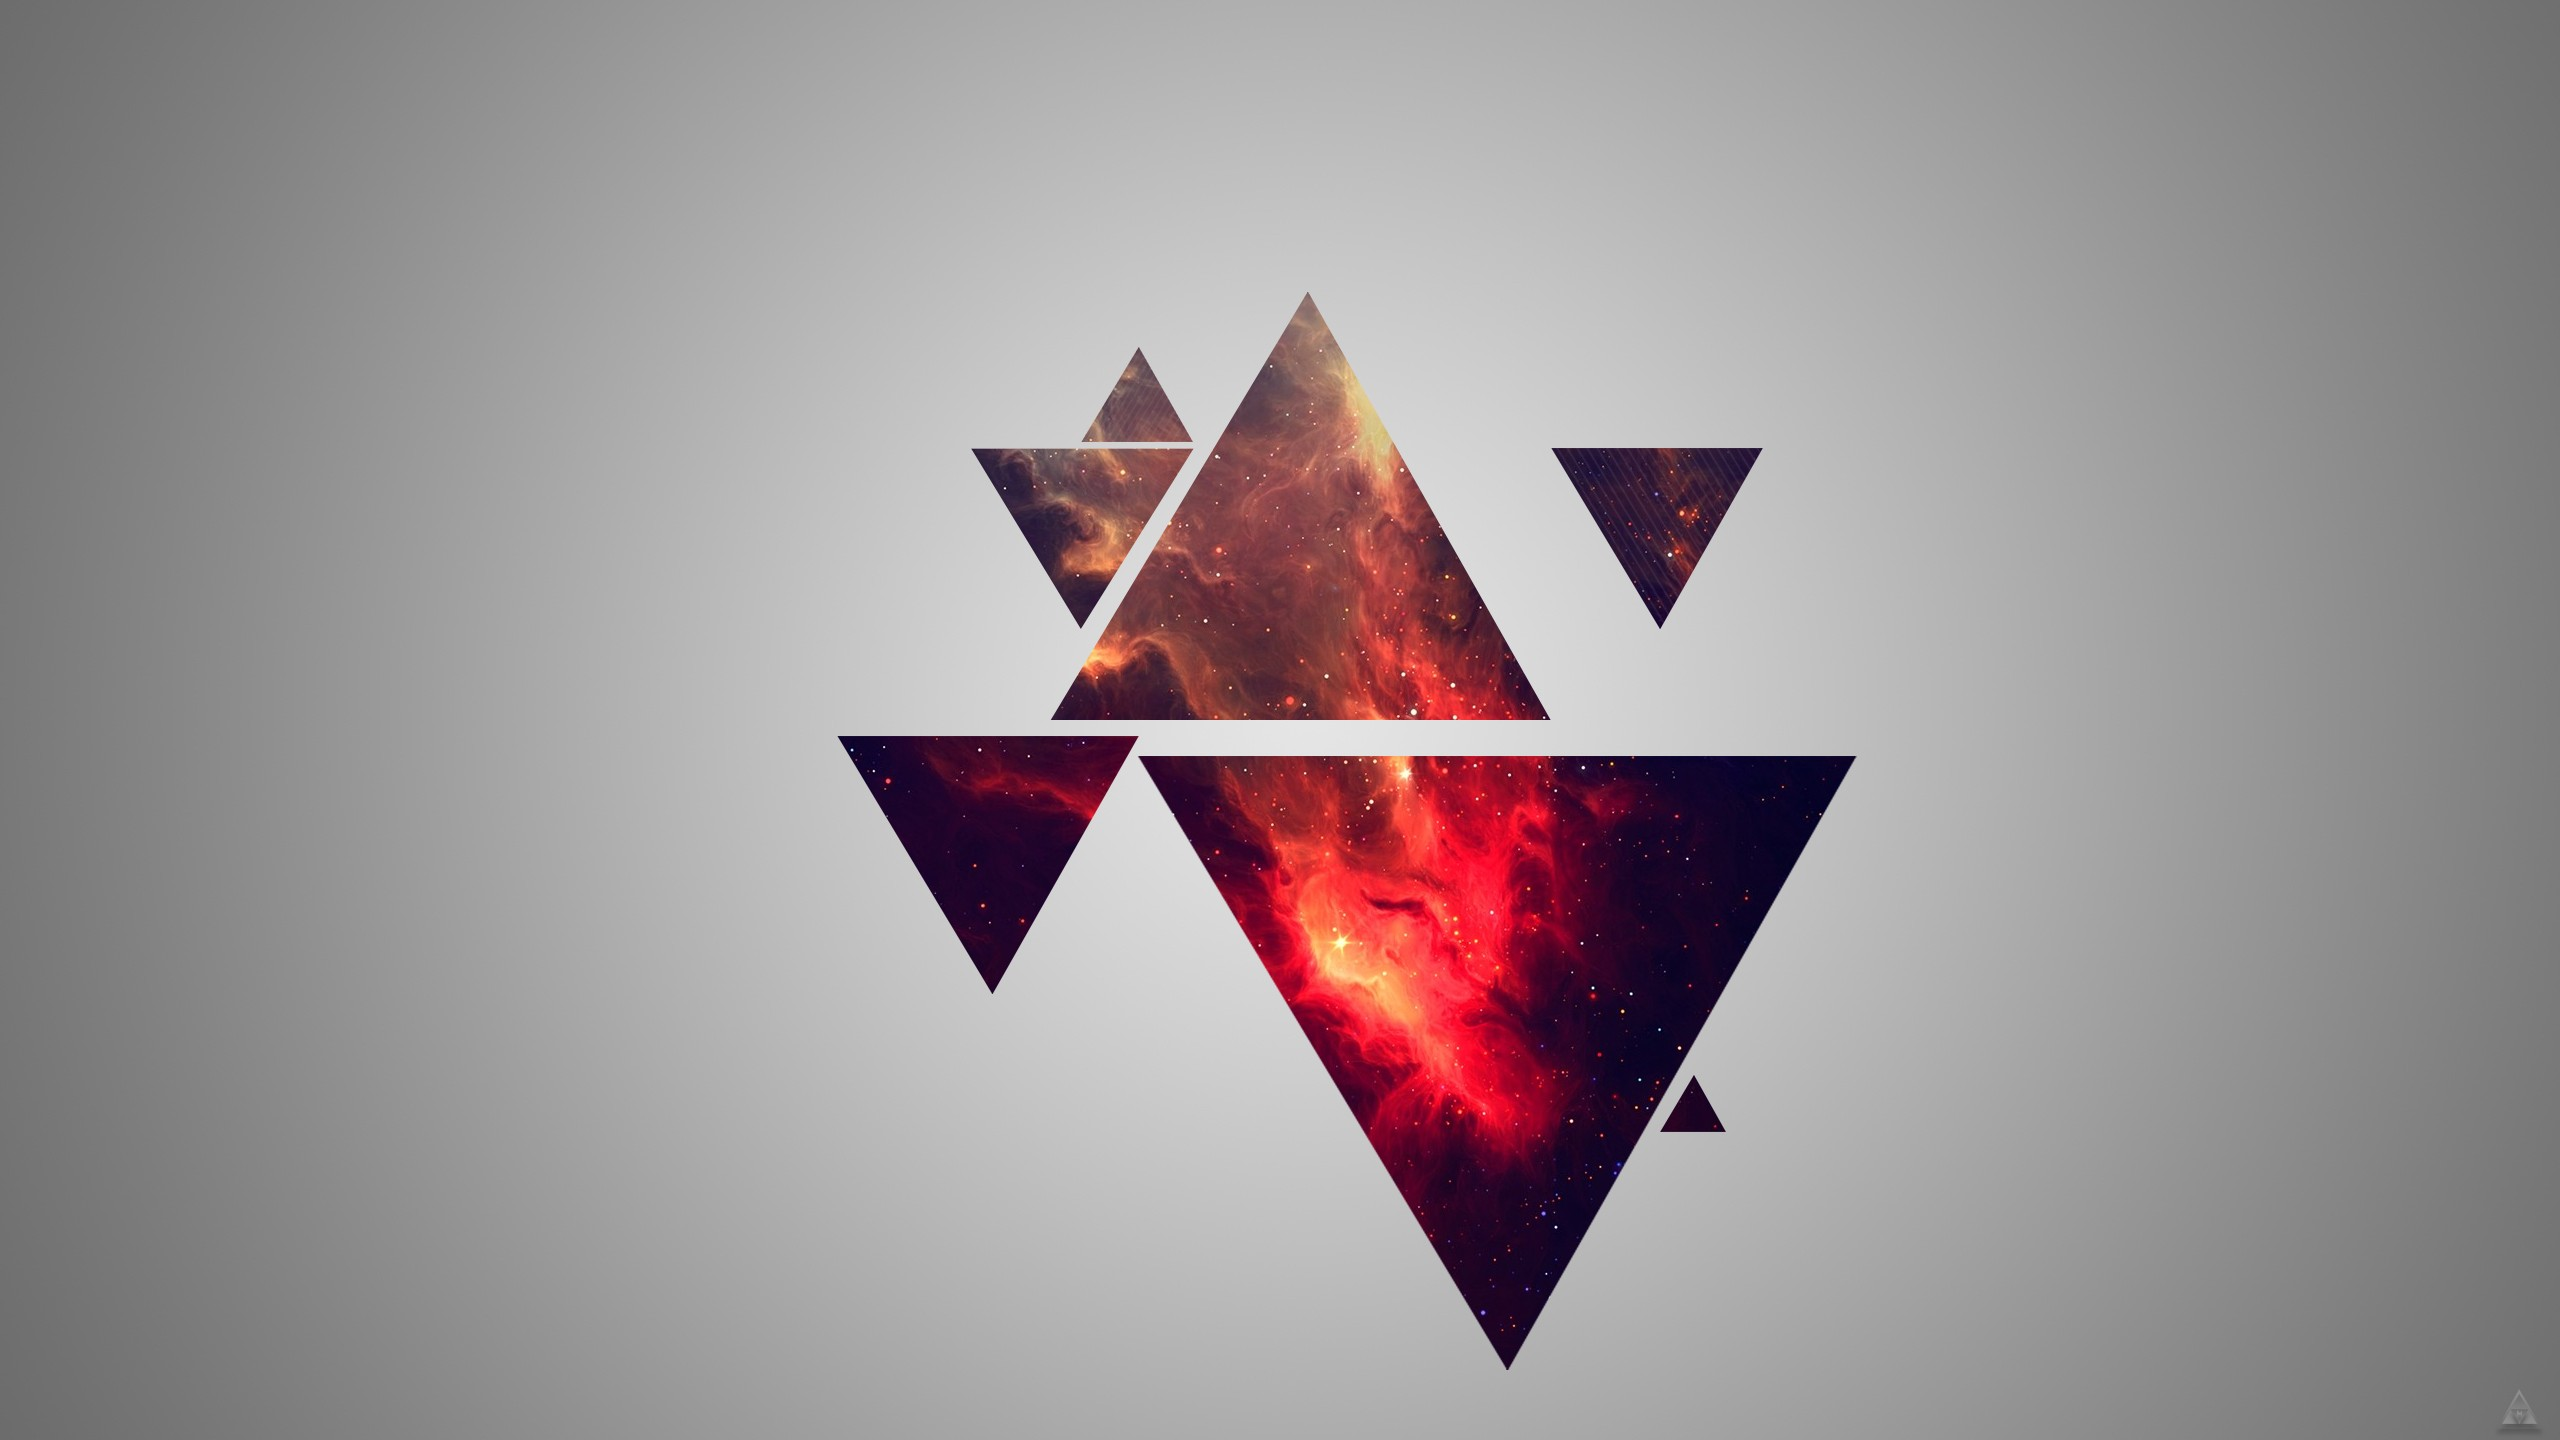 Wallpapers for Gt Galaxy Wallpaper Triangle